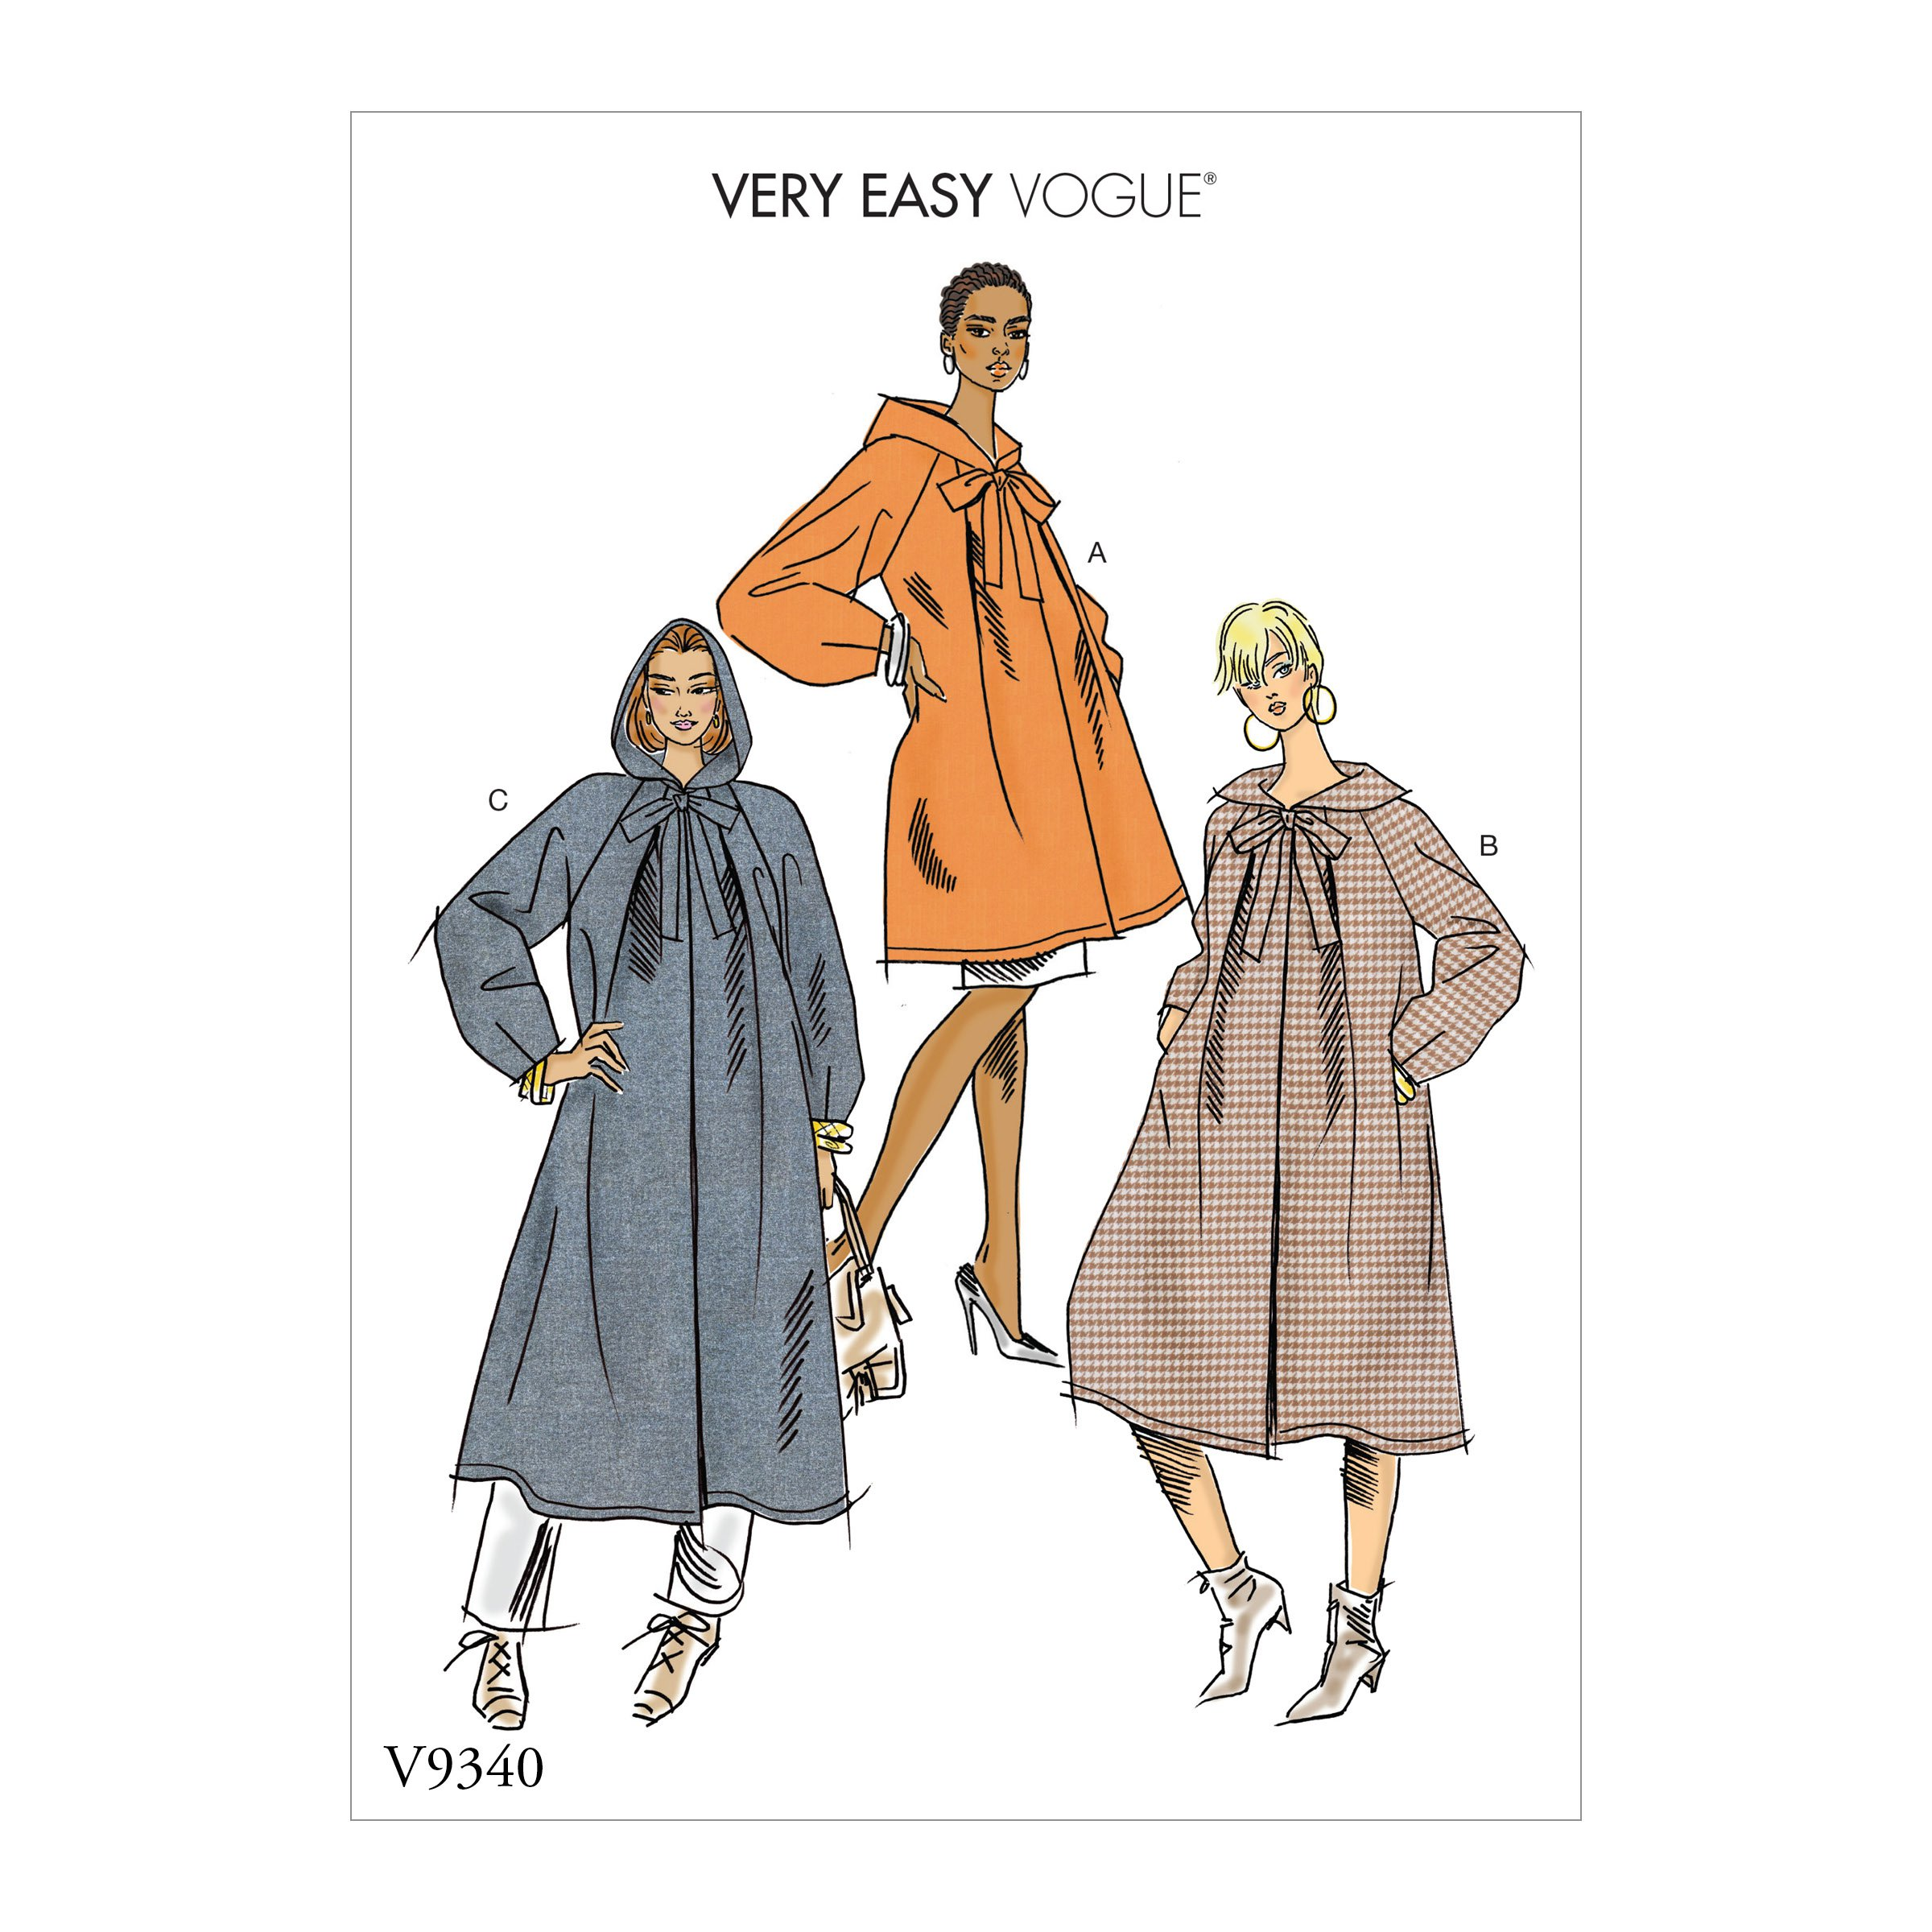 Vogue 9340 - Hooded coats from Very easy range